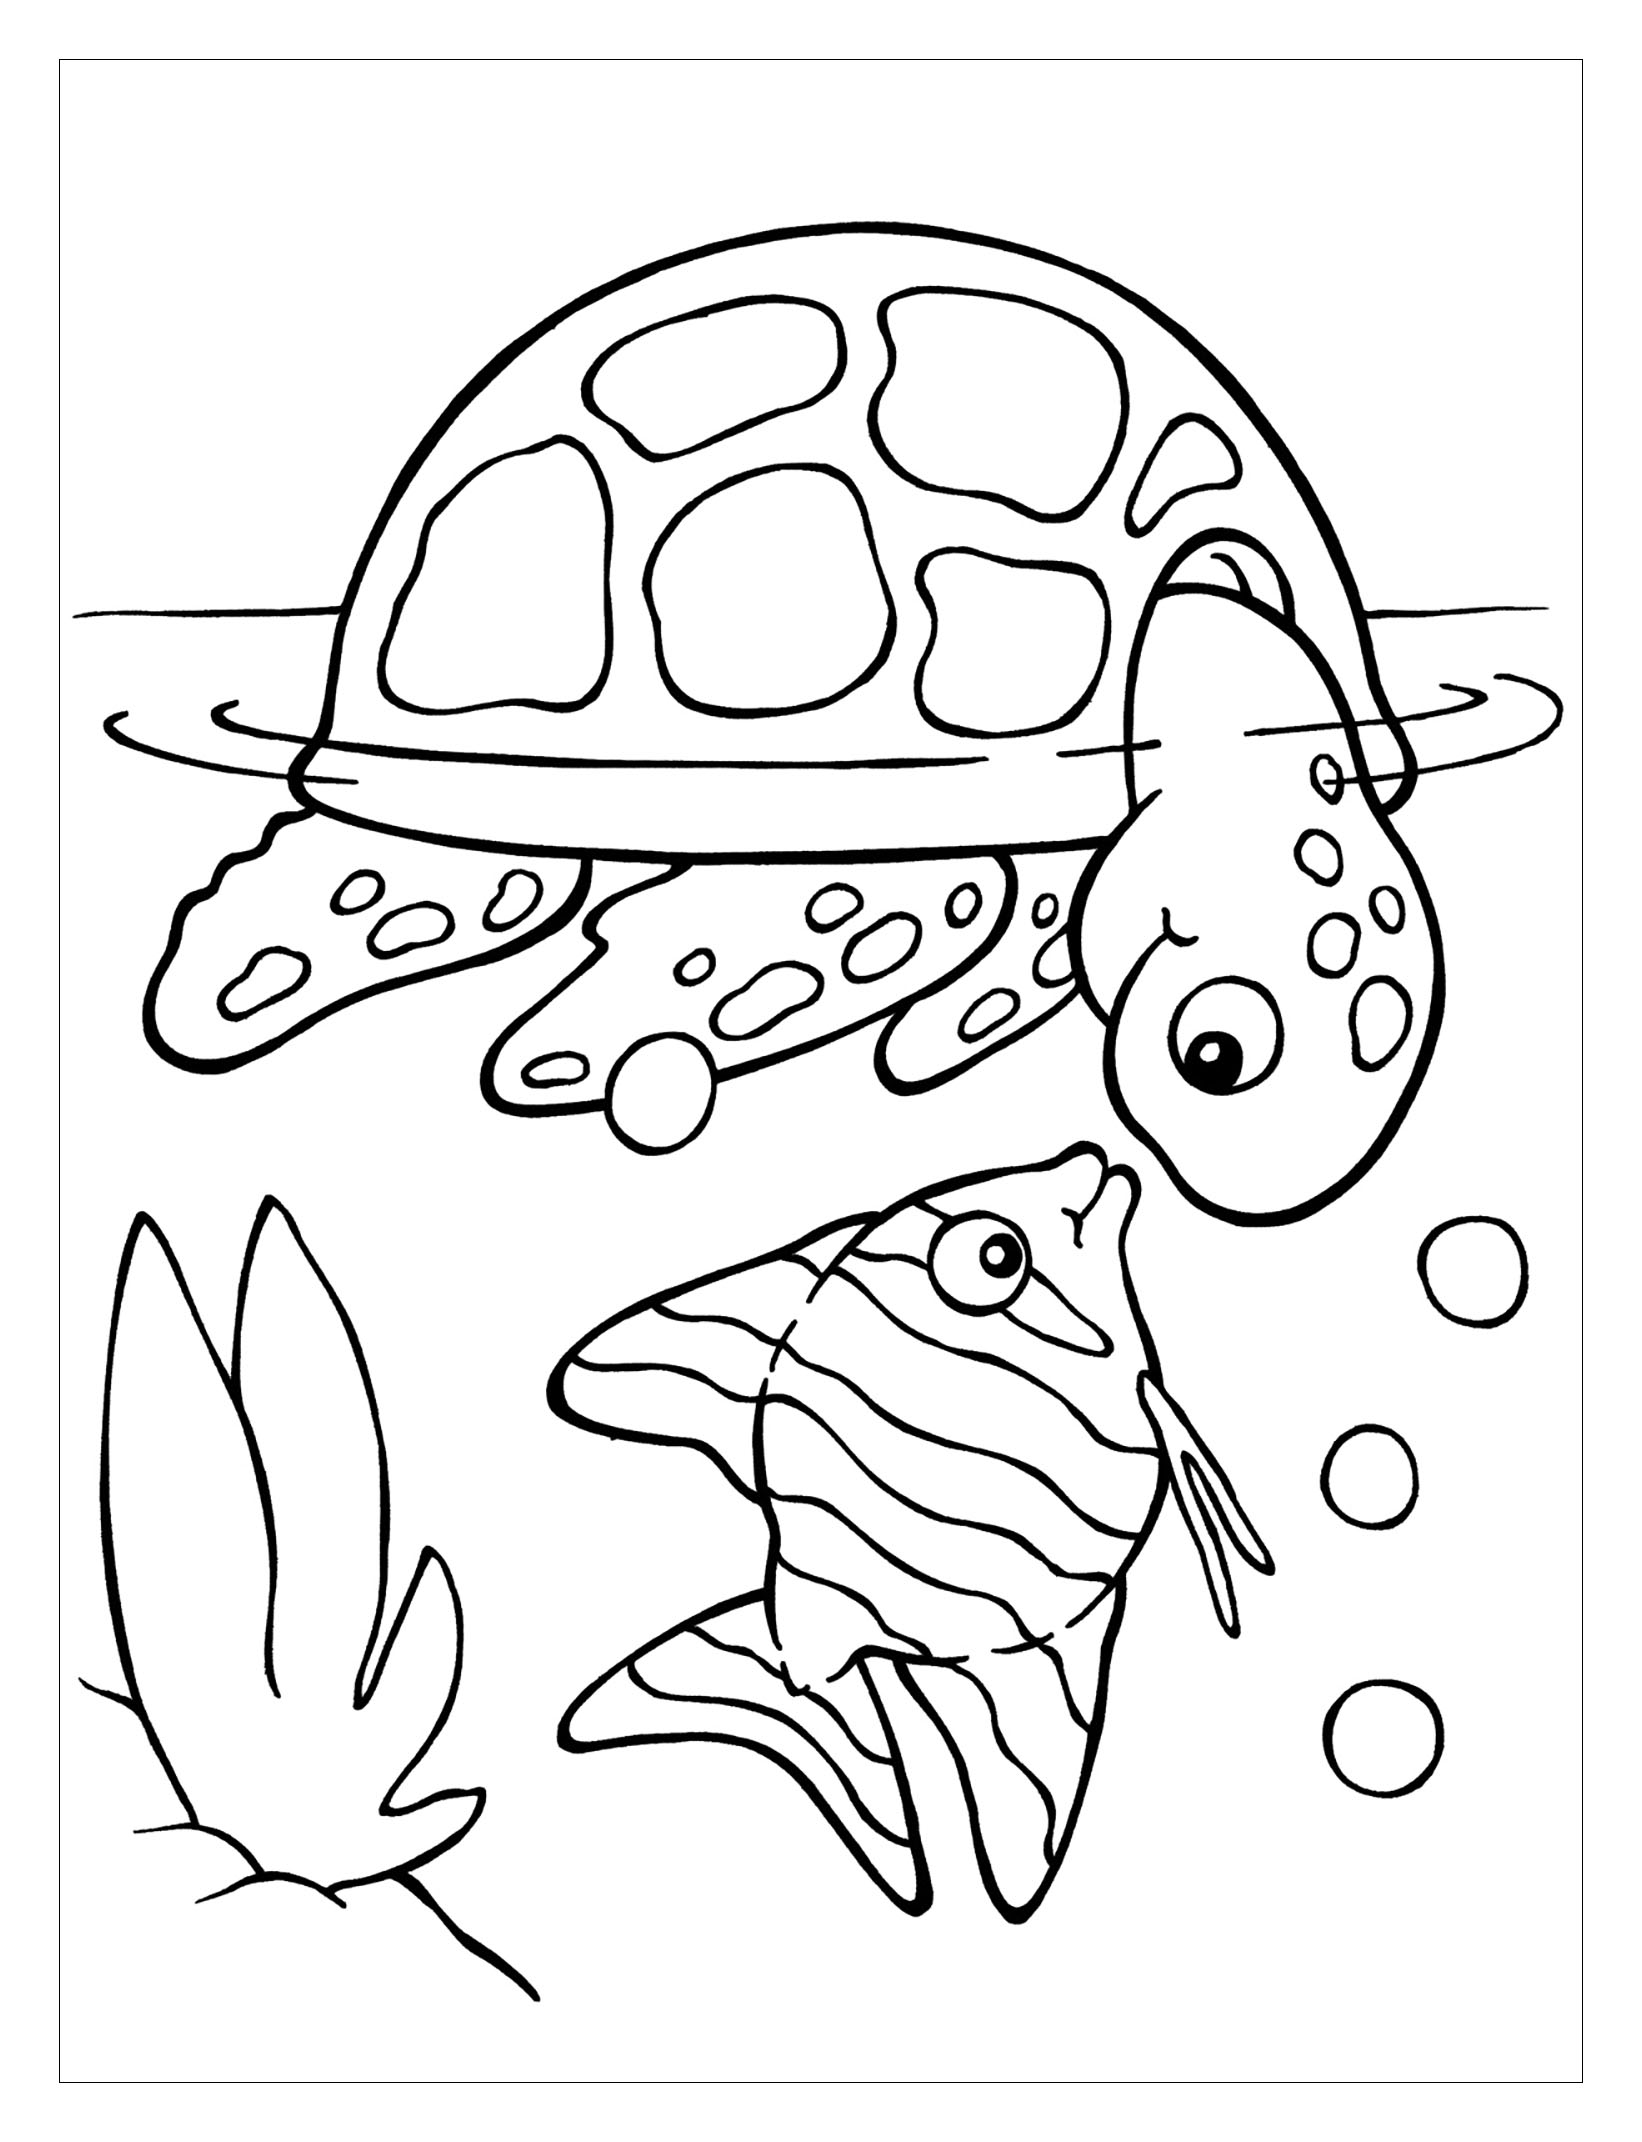 turtle colouring sheets top 20 free printable turtle coloring pages online sheets colouring turtle